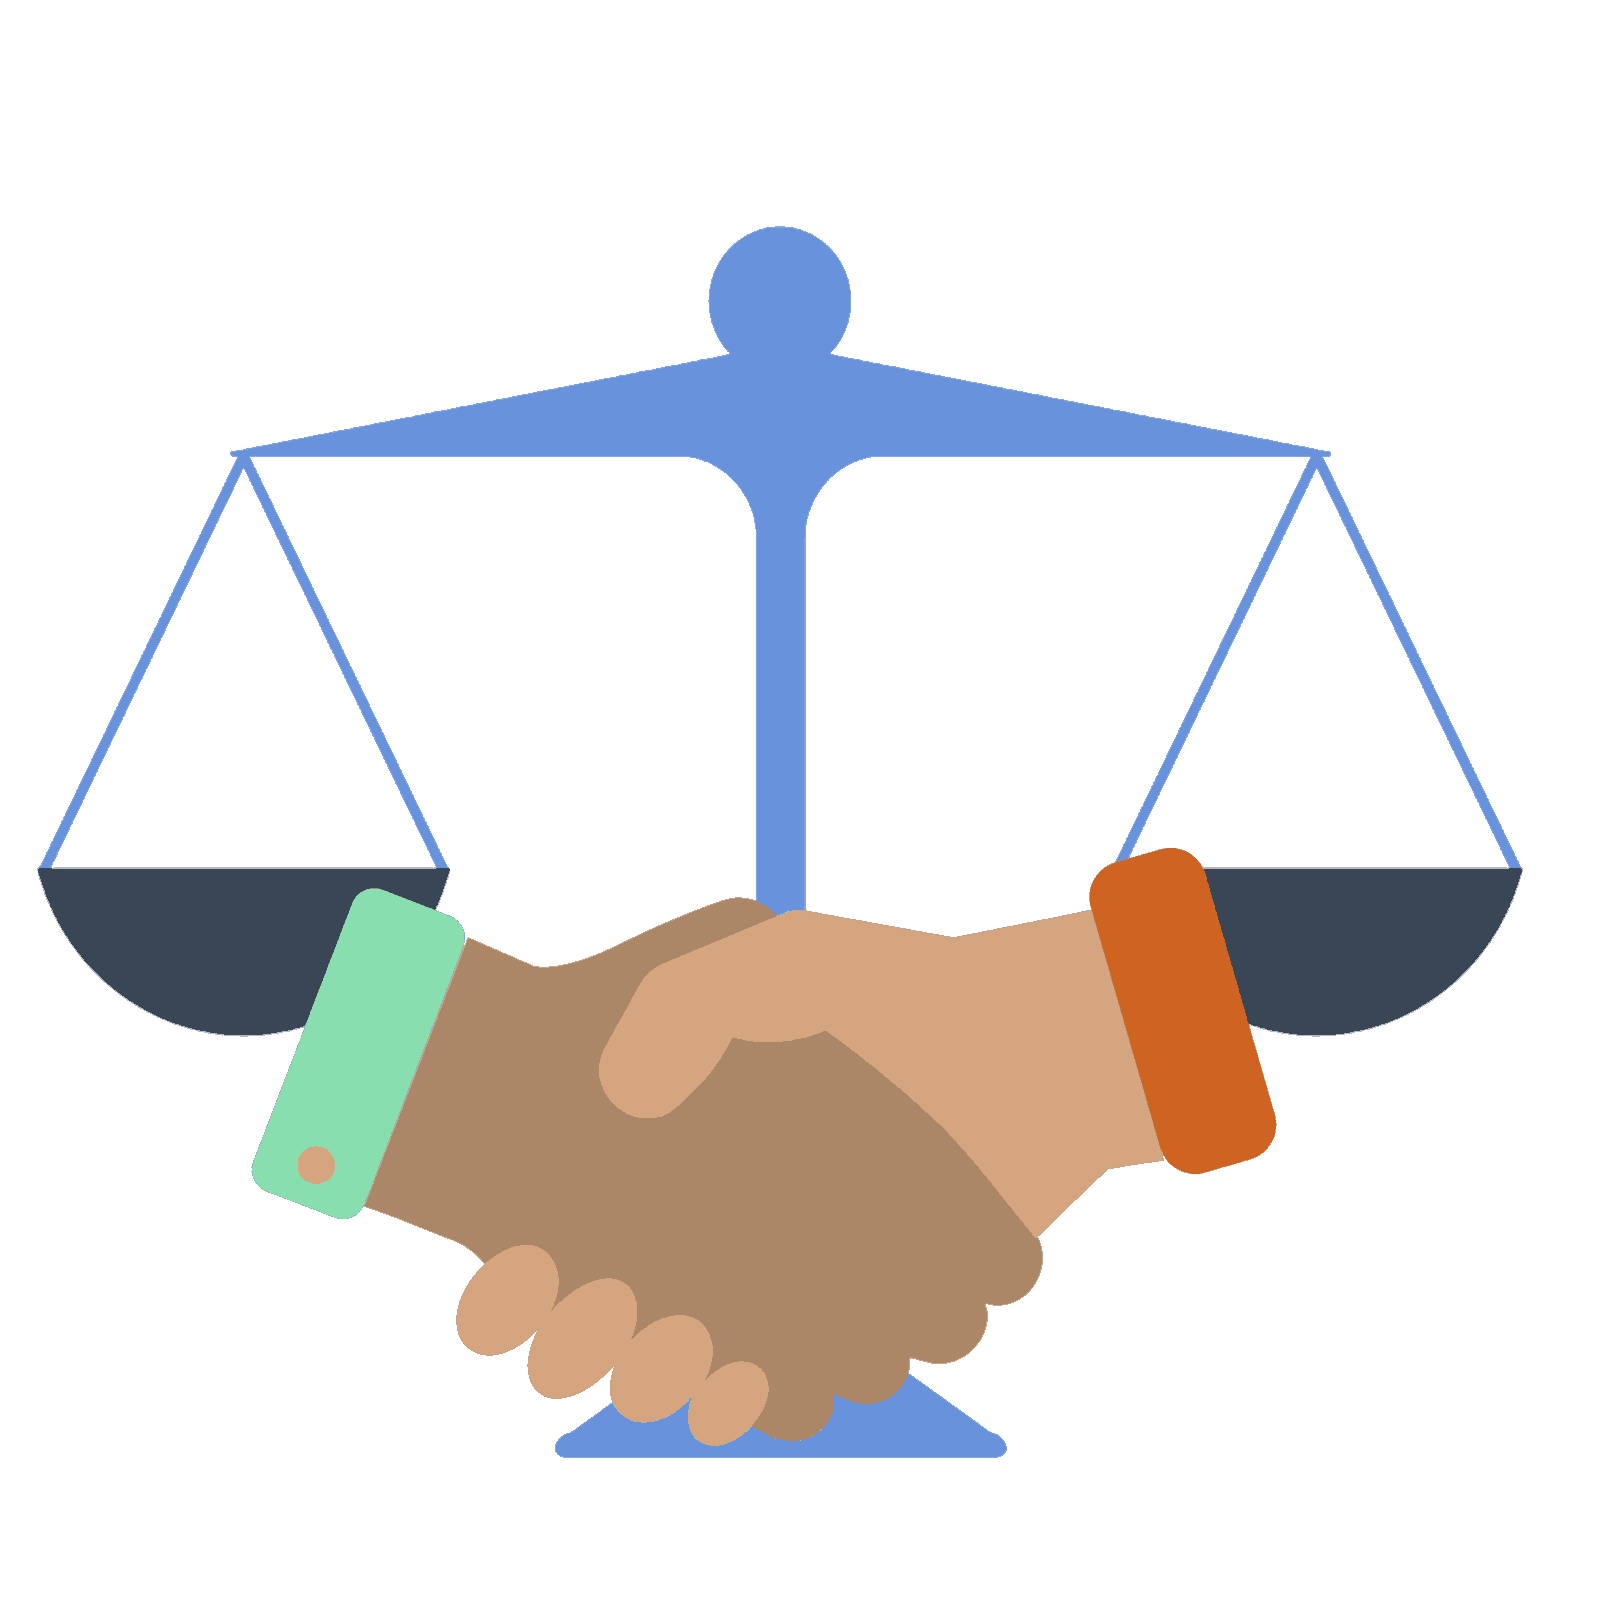 Handshake showing trust and integrity